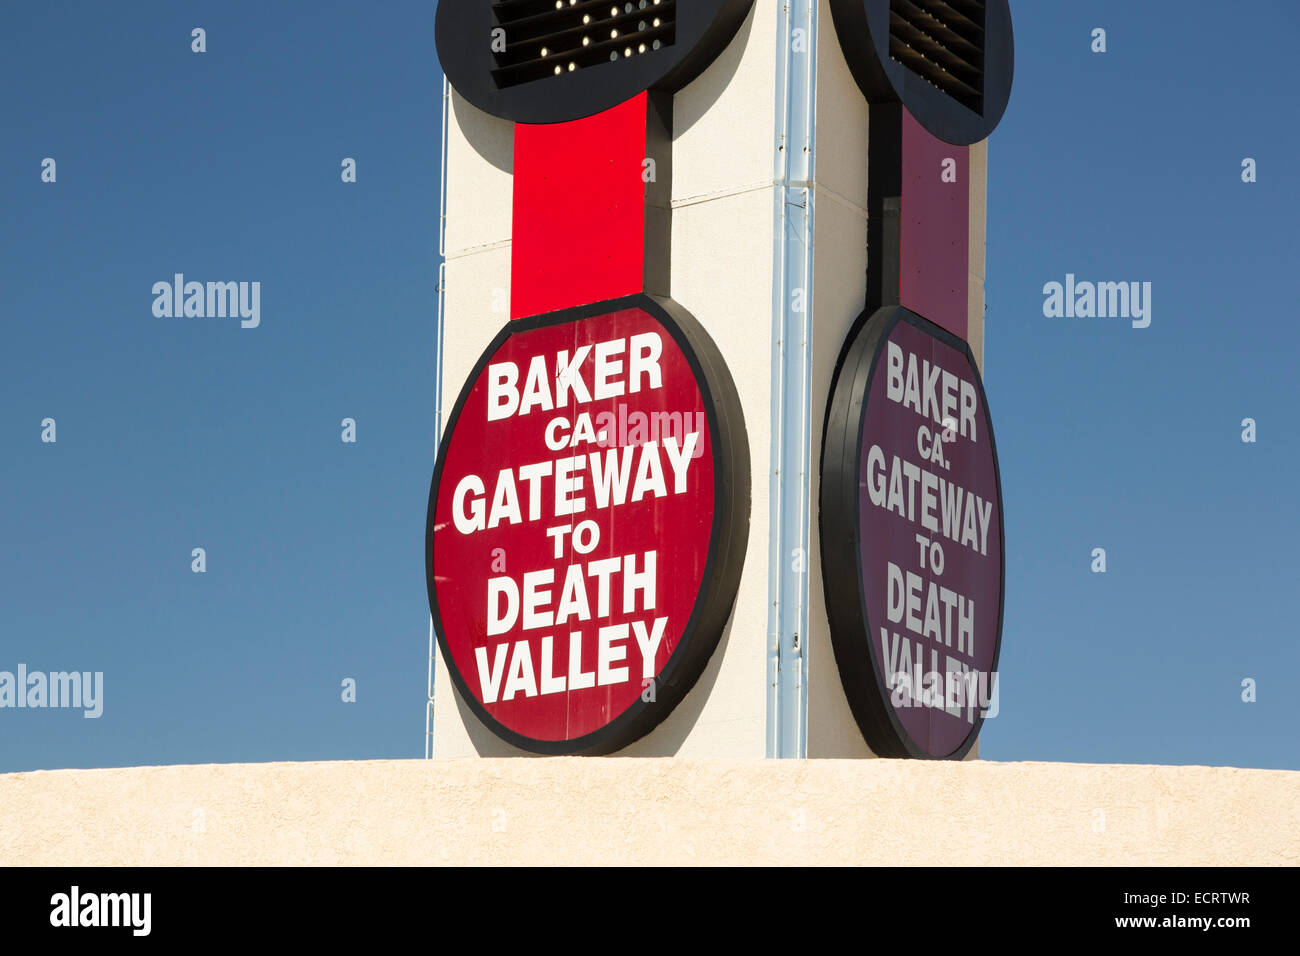 The world's largest thermometer in Baker, gateway to Death Valey, reading  102 degree fahrenheit, California, USA.